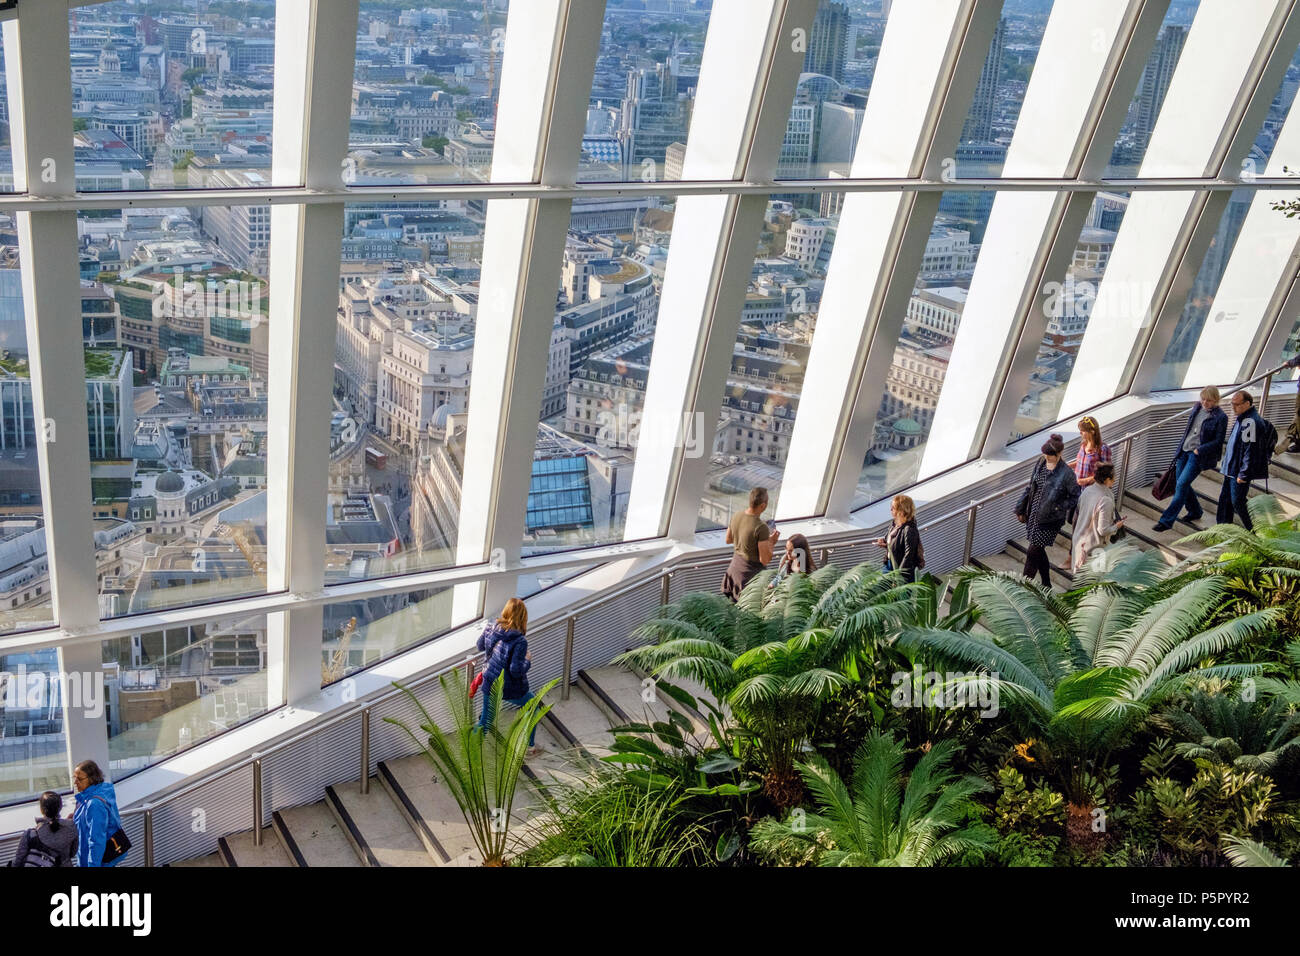 View of London through large windows from the Sky Garden, 20 Fenchurch St. London's Highest Public Garden. Known as the Walkie Talkie. Horizontal. - Stock Image